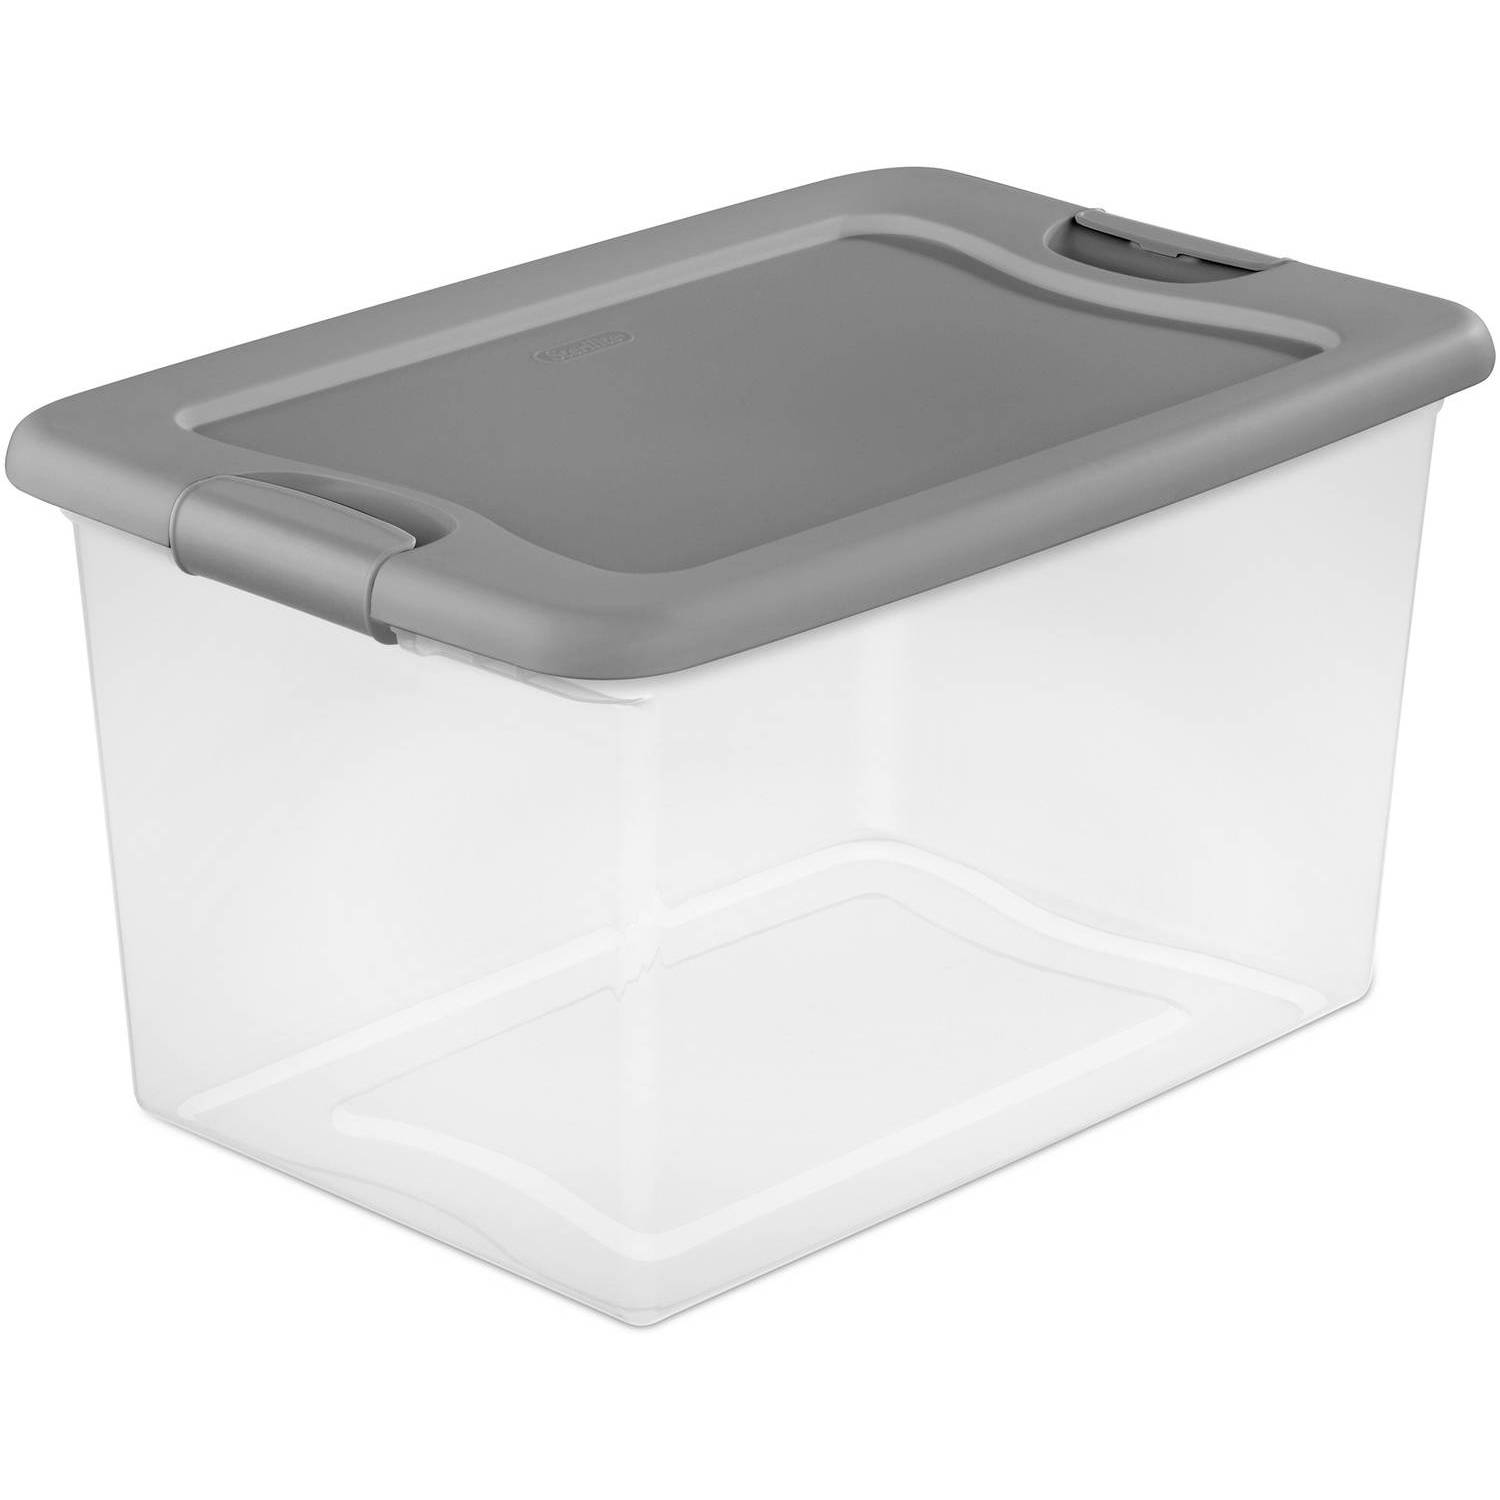 gallon com shop tub commander target containers plastics lowes pl tubs with storage lid llc snap centrex tote organization black standard at baskets